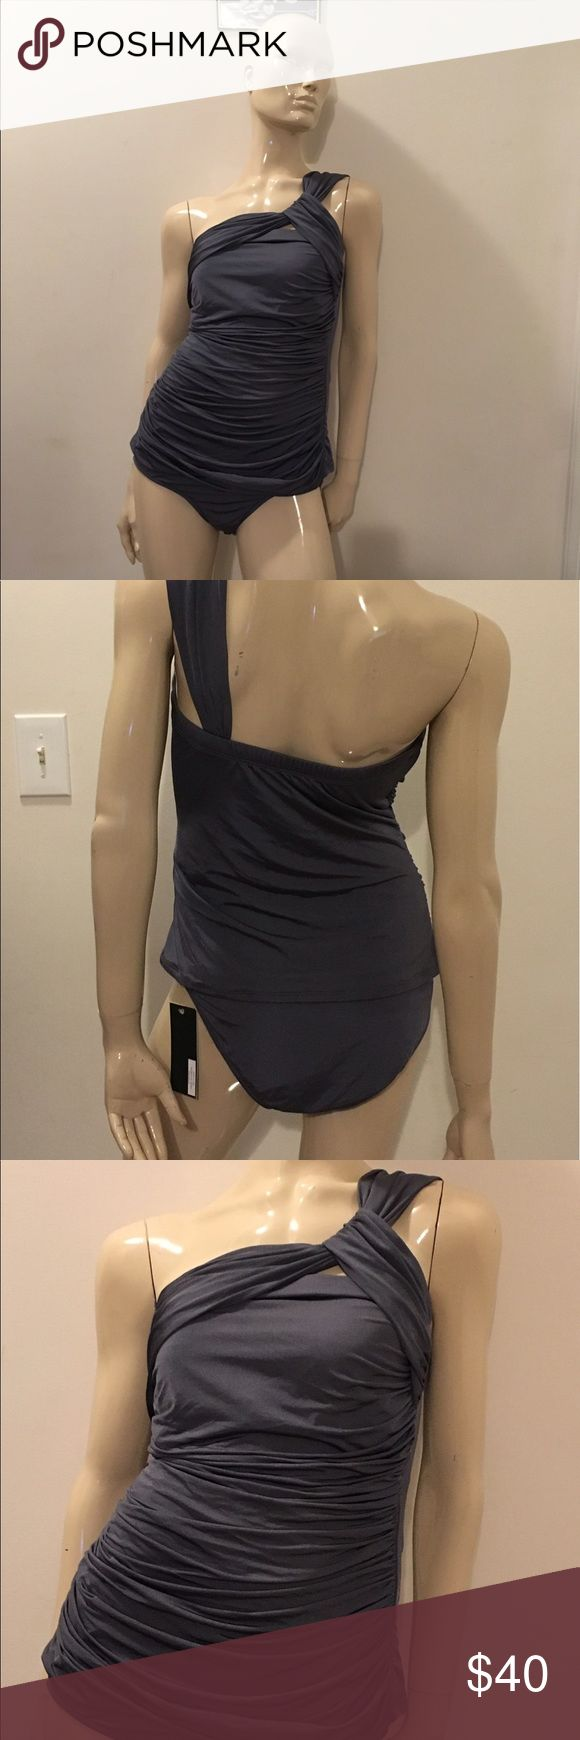 Size XL 1Sol swimsuit NWT Gorgeous size XL 1Sol charcoal grey 2 piece swimsuit, bikini cut bottom, gorgeous asymmetrical tankini top with ruching, this is a breathtaking swimsuit, sure to garner plenty of compliments! NWT. 1Sol Swim